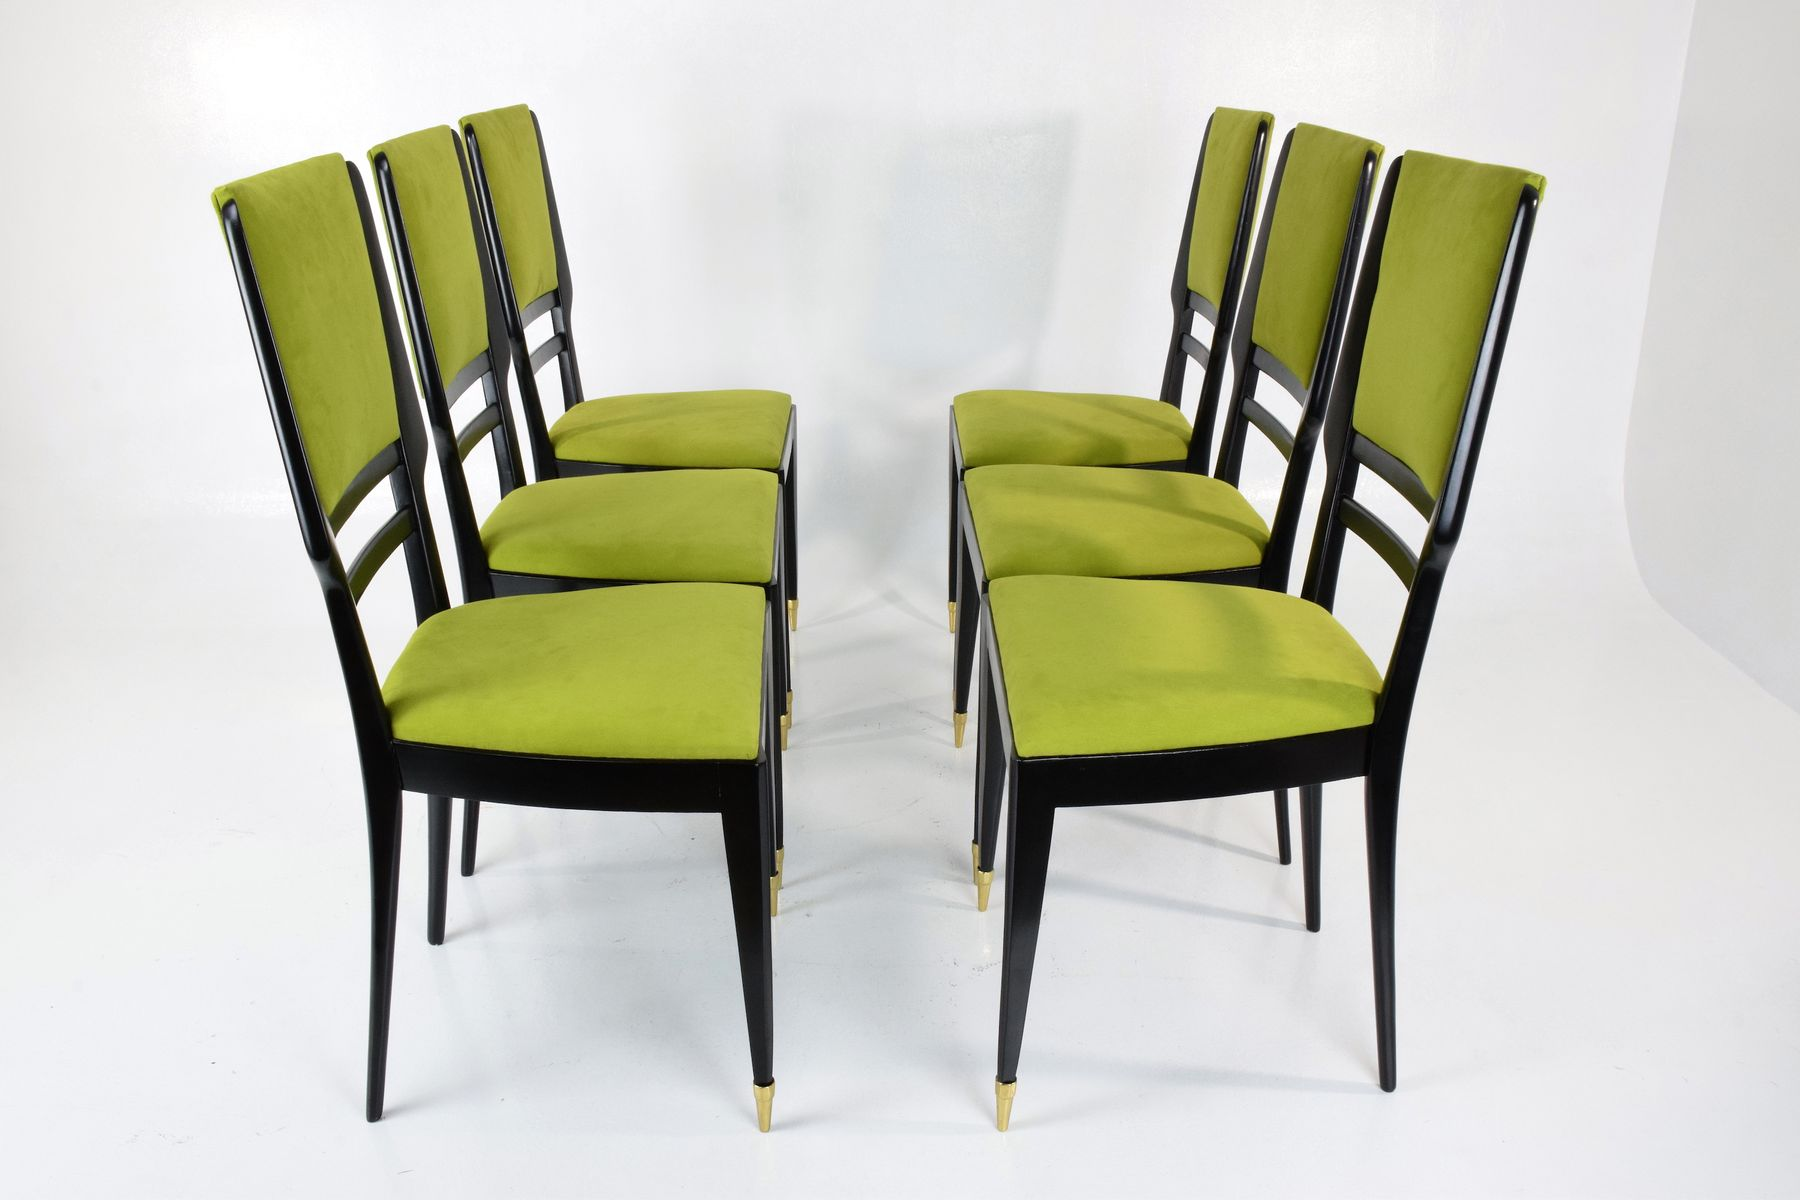 Italian Dining Chairs Italian Dining Chairs 1950s Set Of 6 For Sale At Pamono